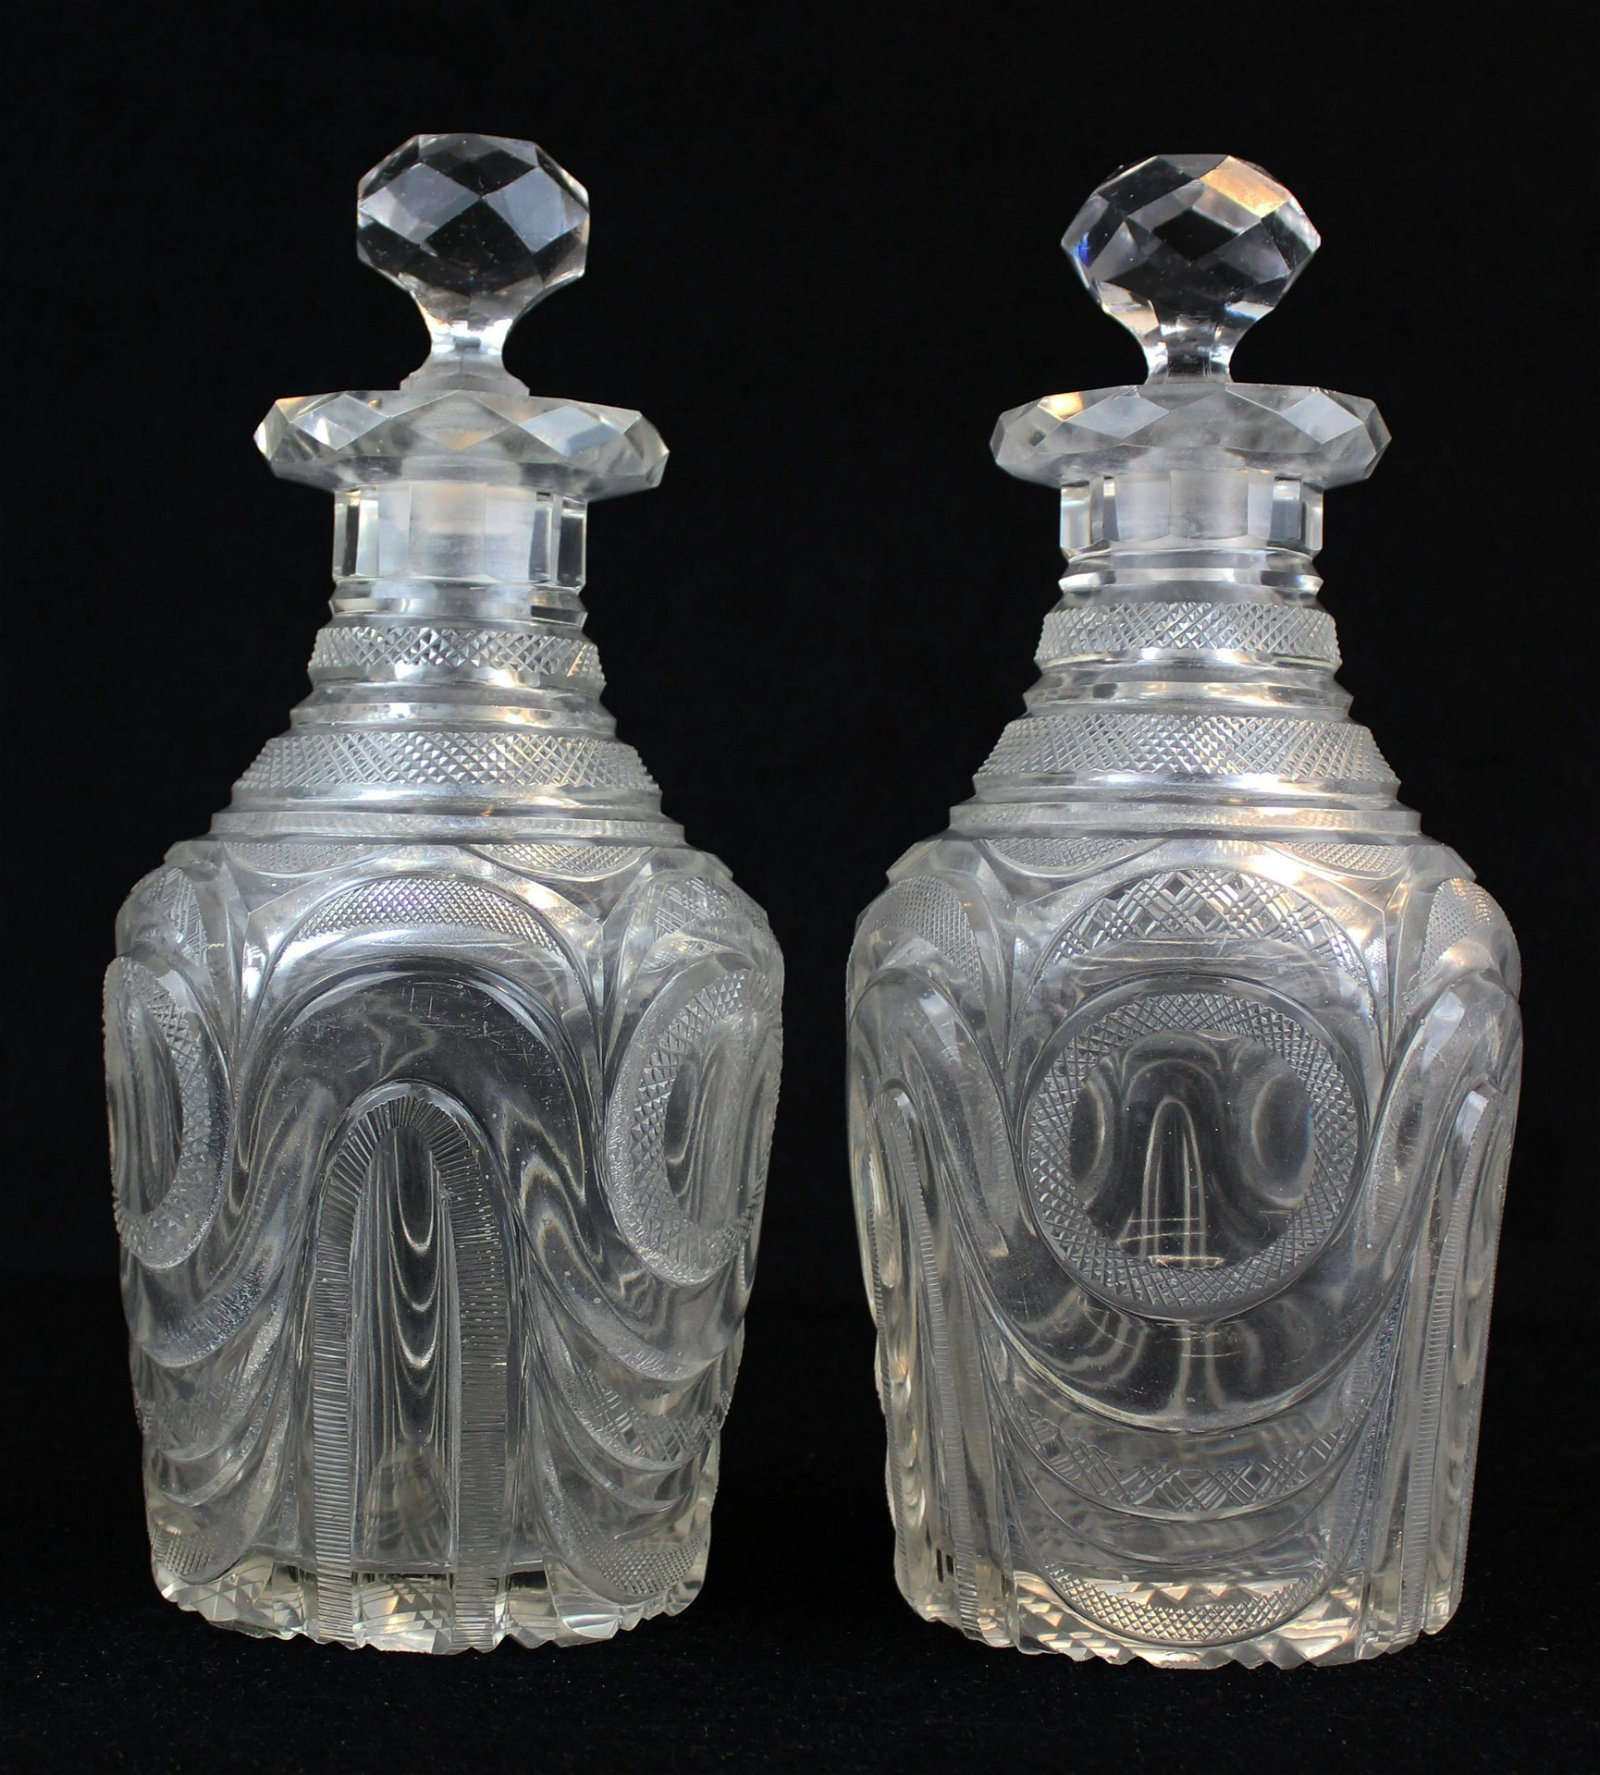 pair of 19th c. Anglo Irish cut glass decanters